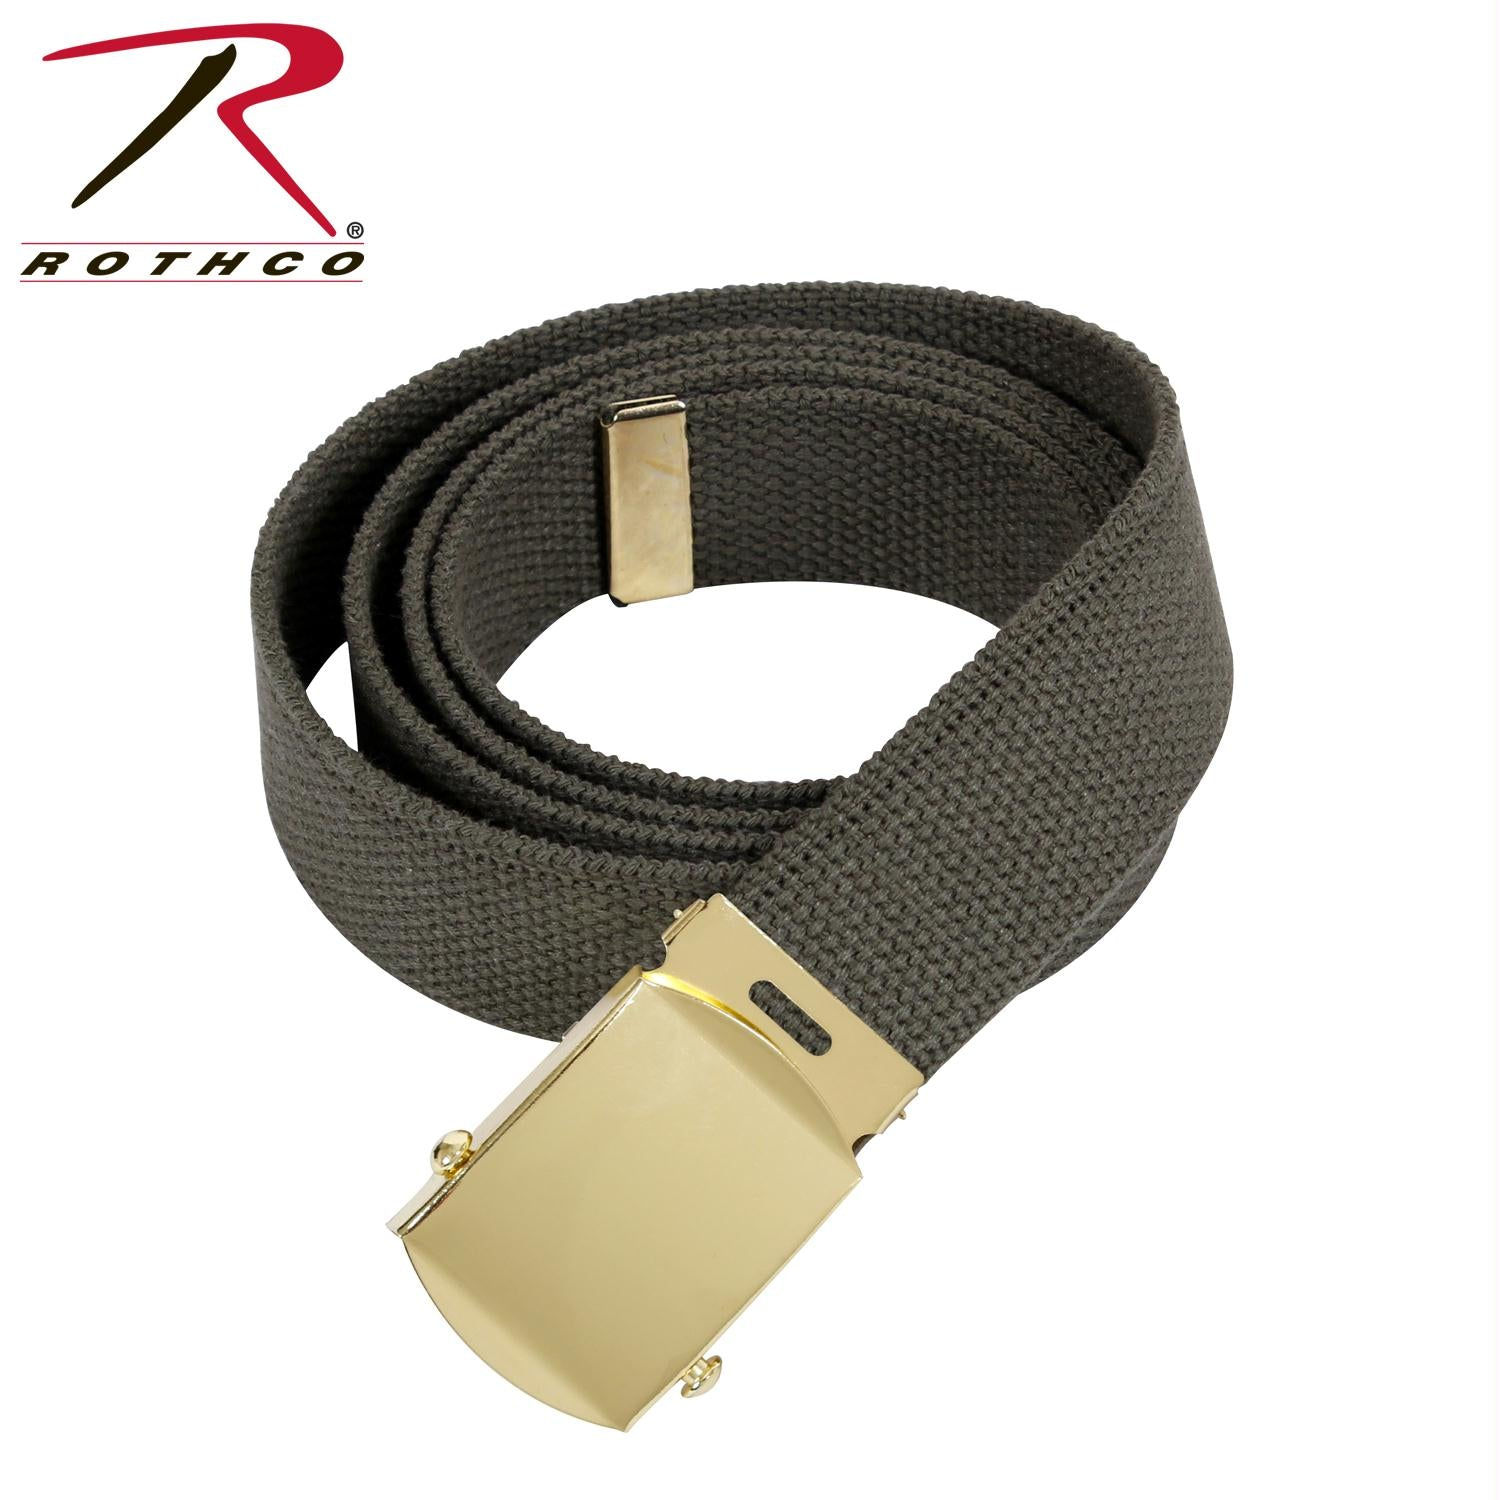 Rothco 64 Inch Military Color Web Belts - Gold / Olive Drab